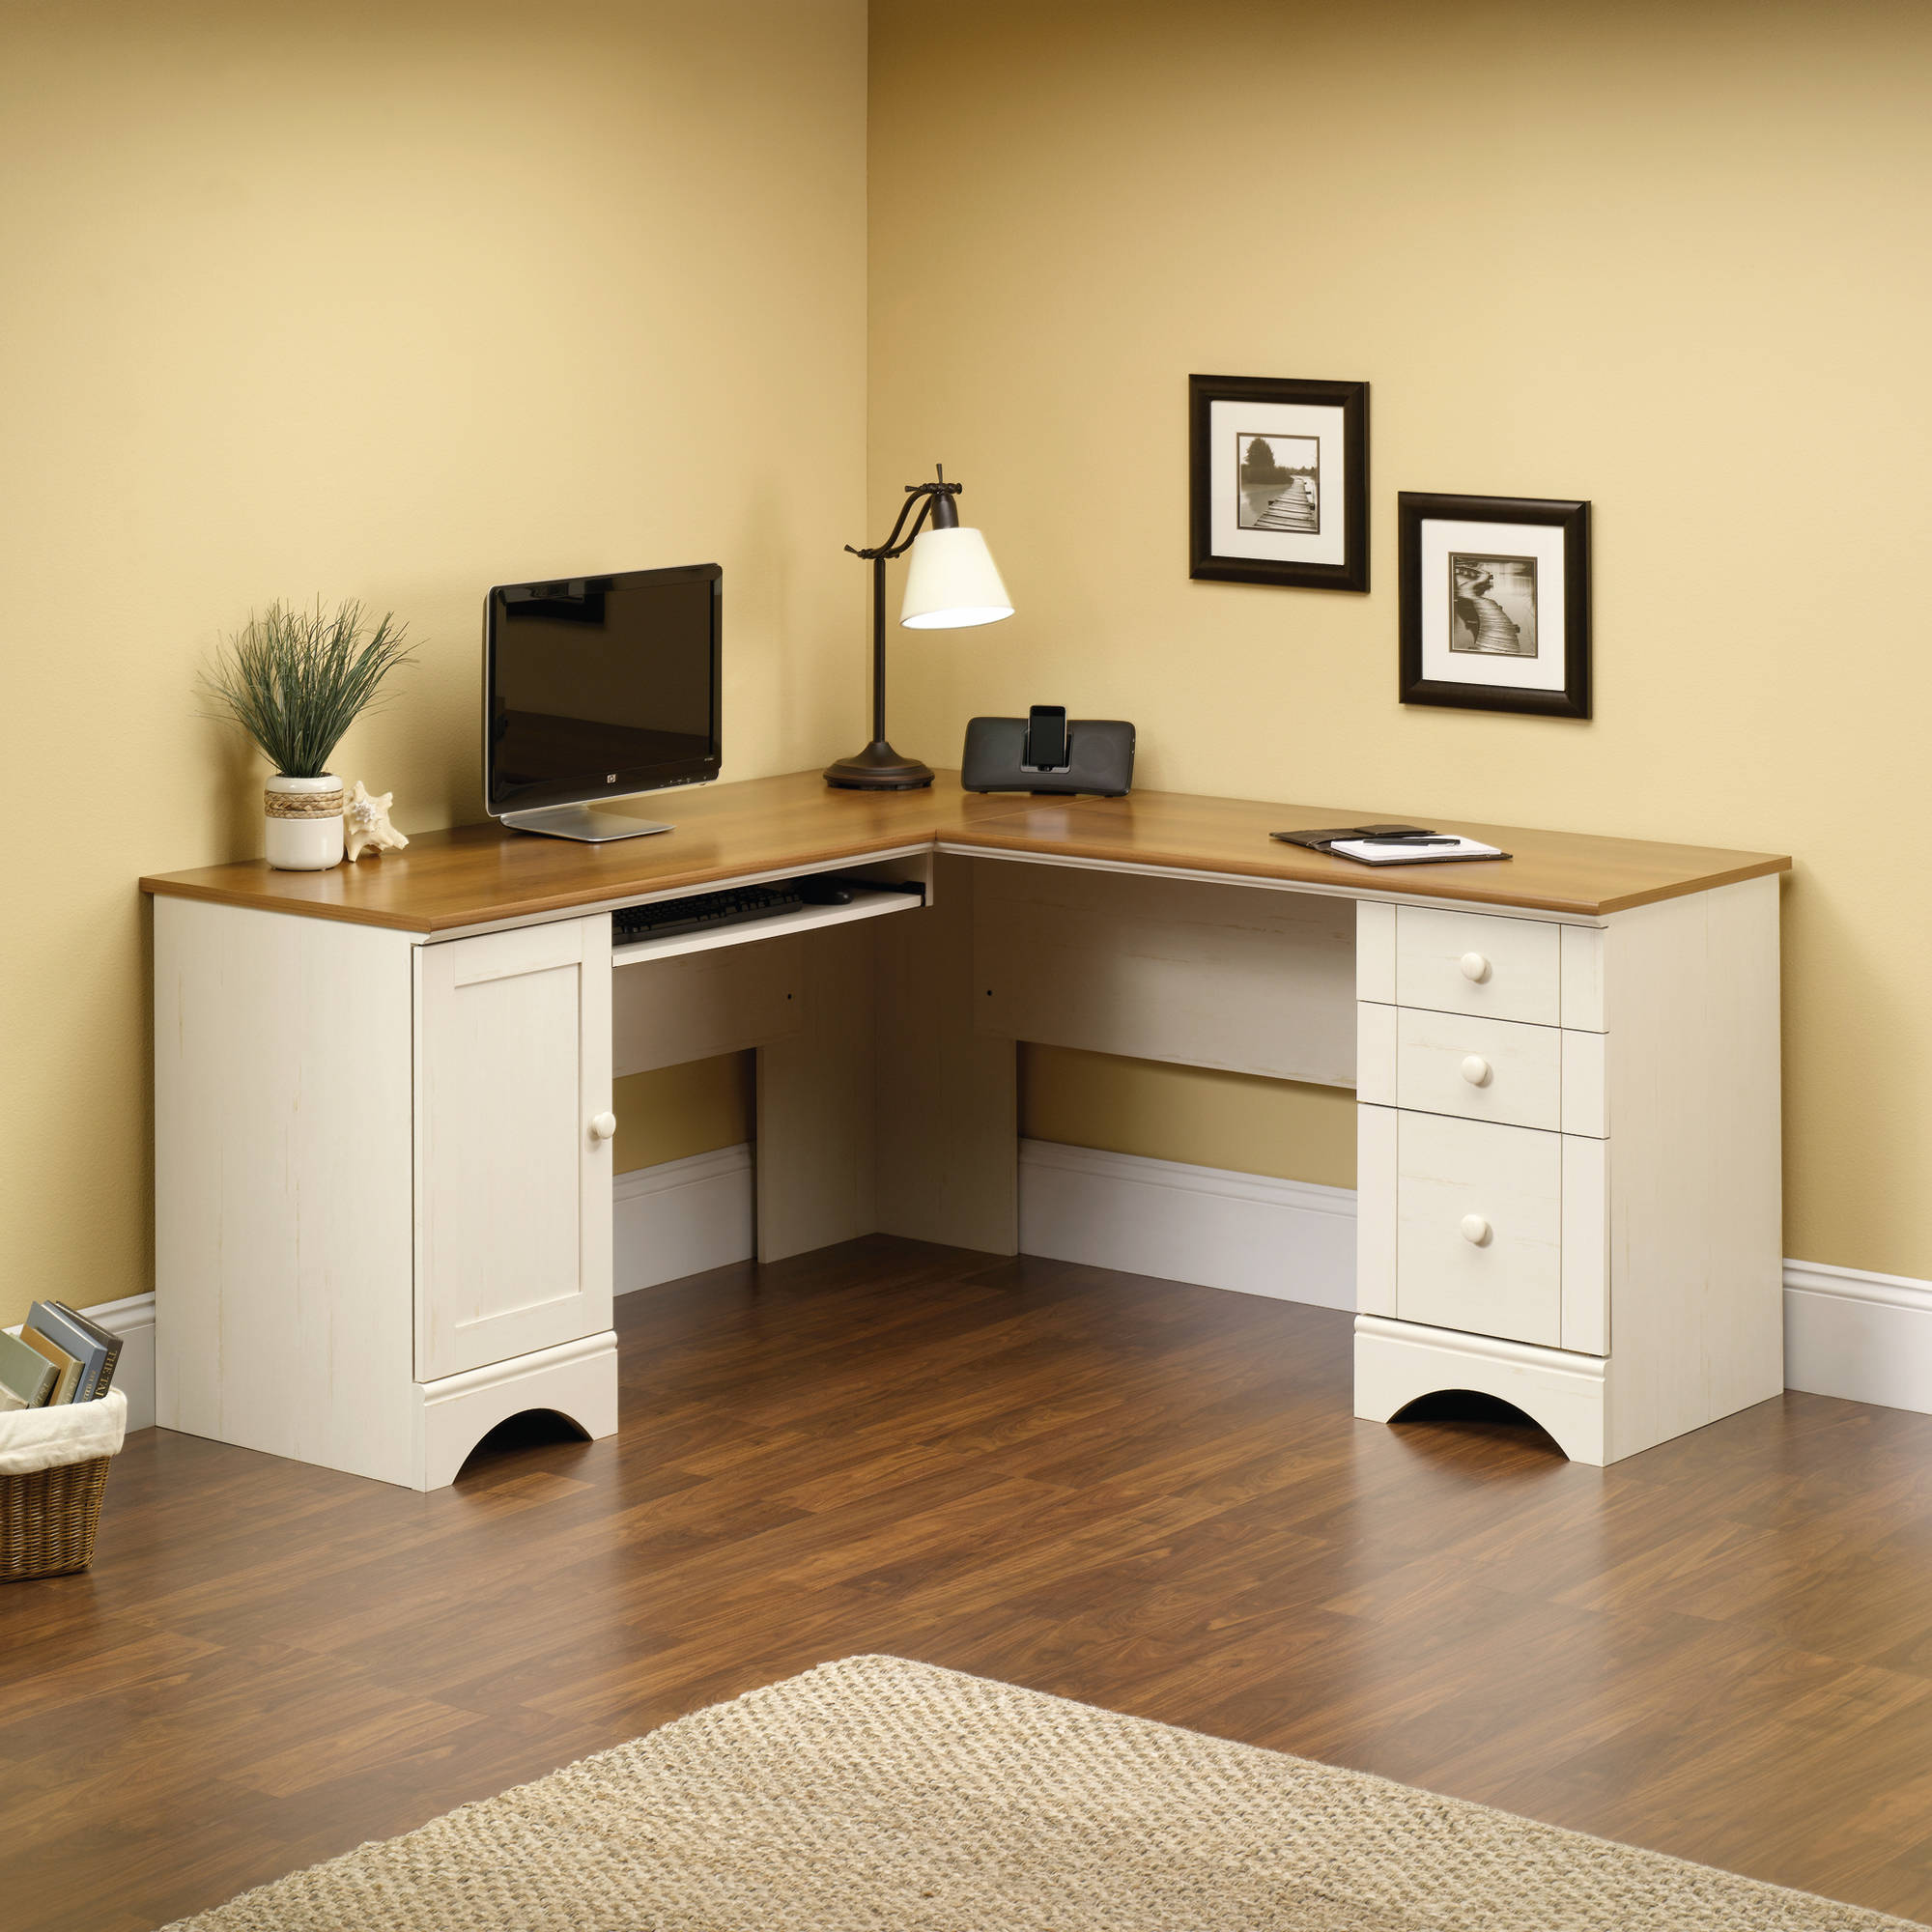 Sauder Harbor View Corner Computer Desk, Antiqued White Finish